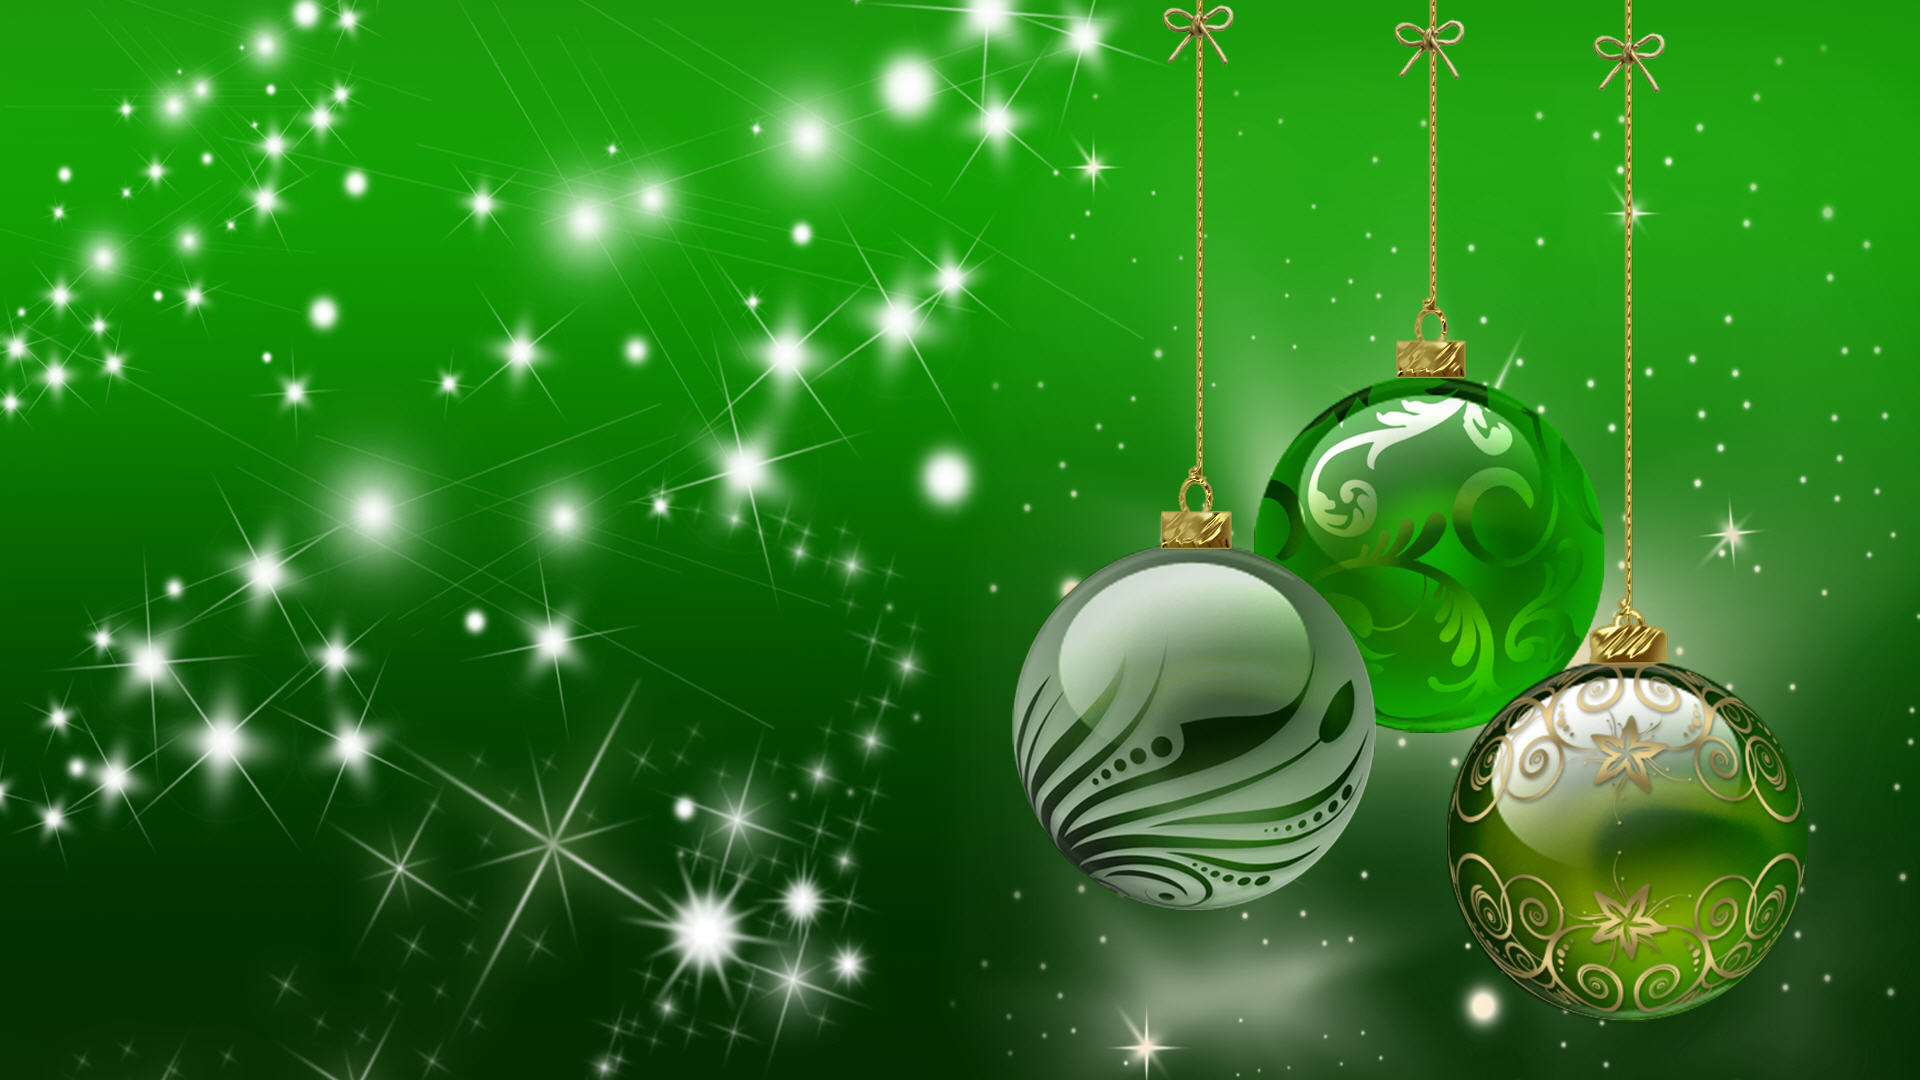 christmas holiday wallpaper backgrounds - sf wallpaper